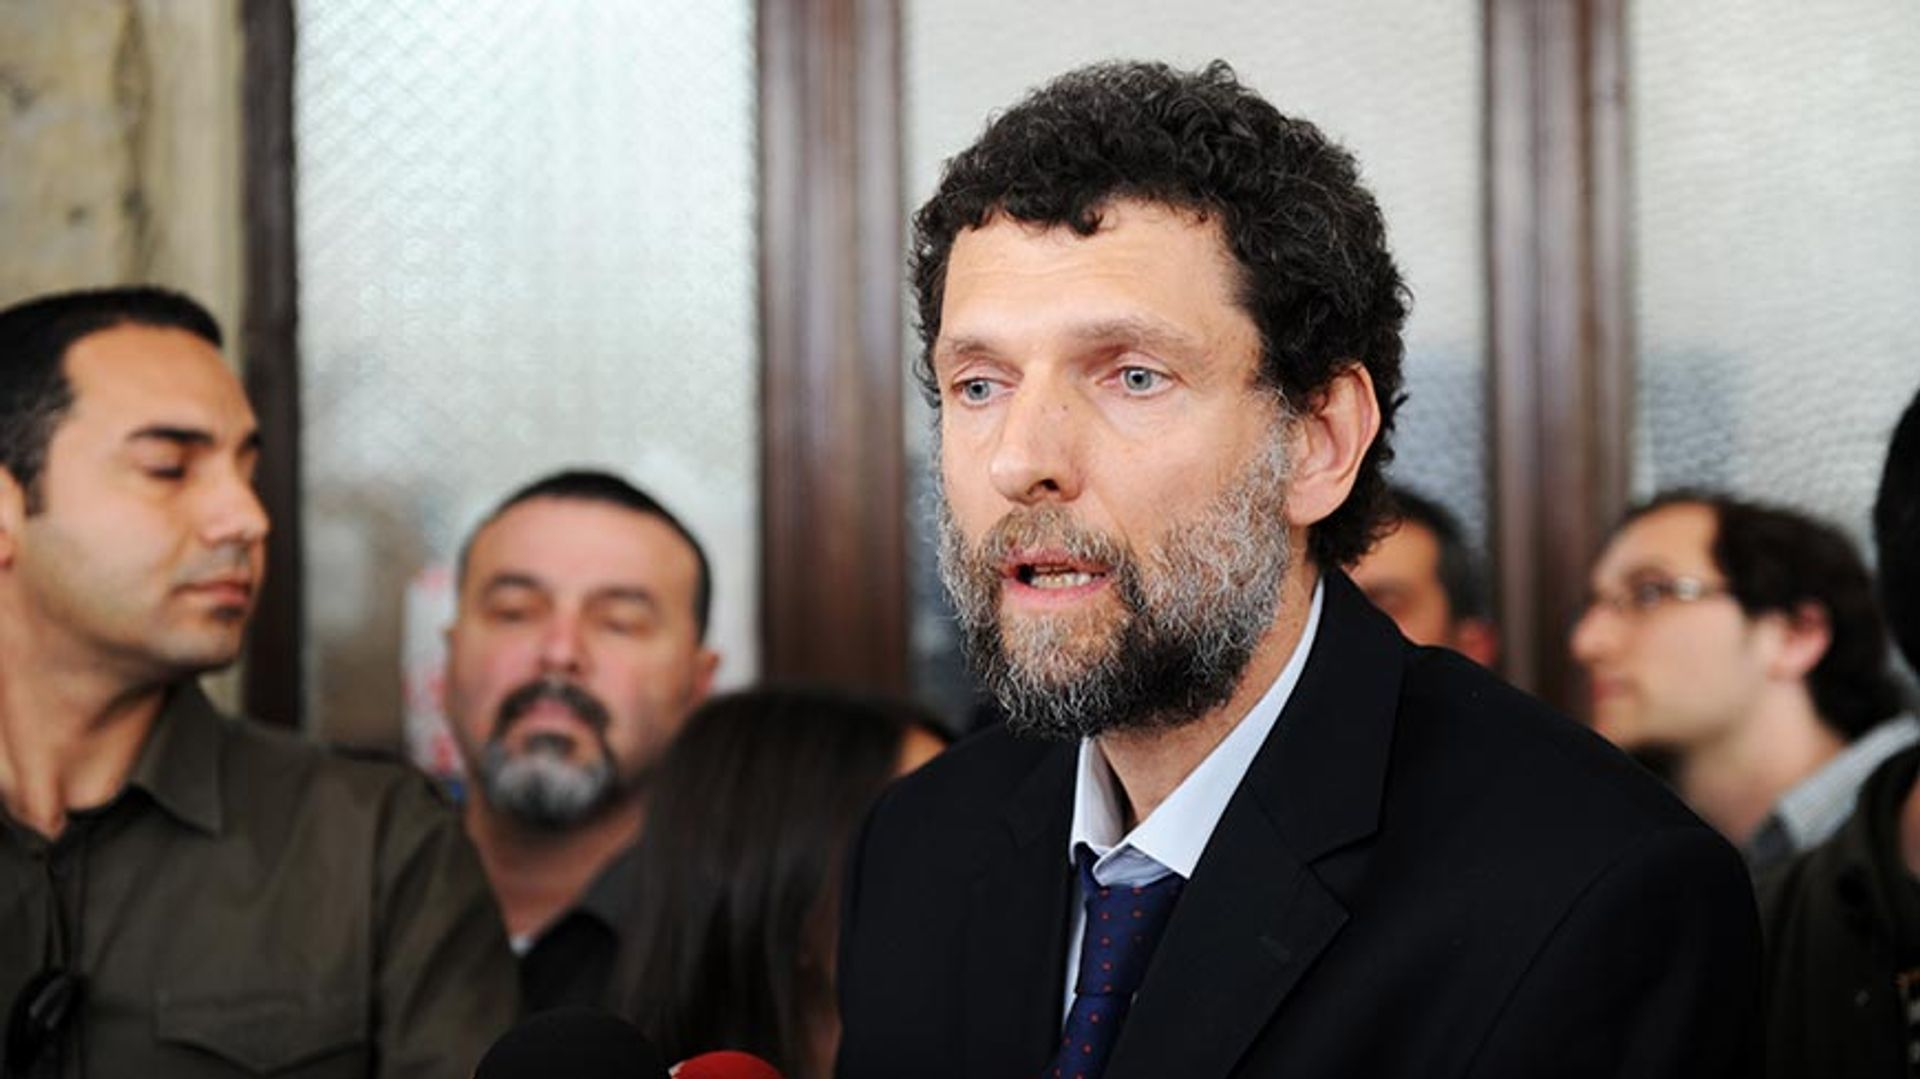 Osman Kavala has been detained in prison without conviction for nearly four years Courtesy of Council of Europe